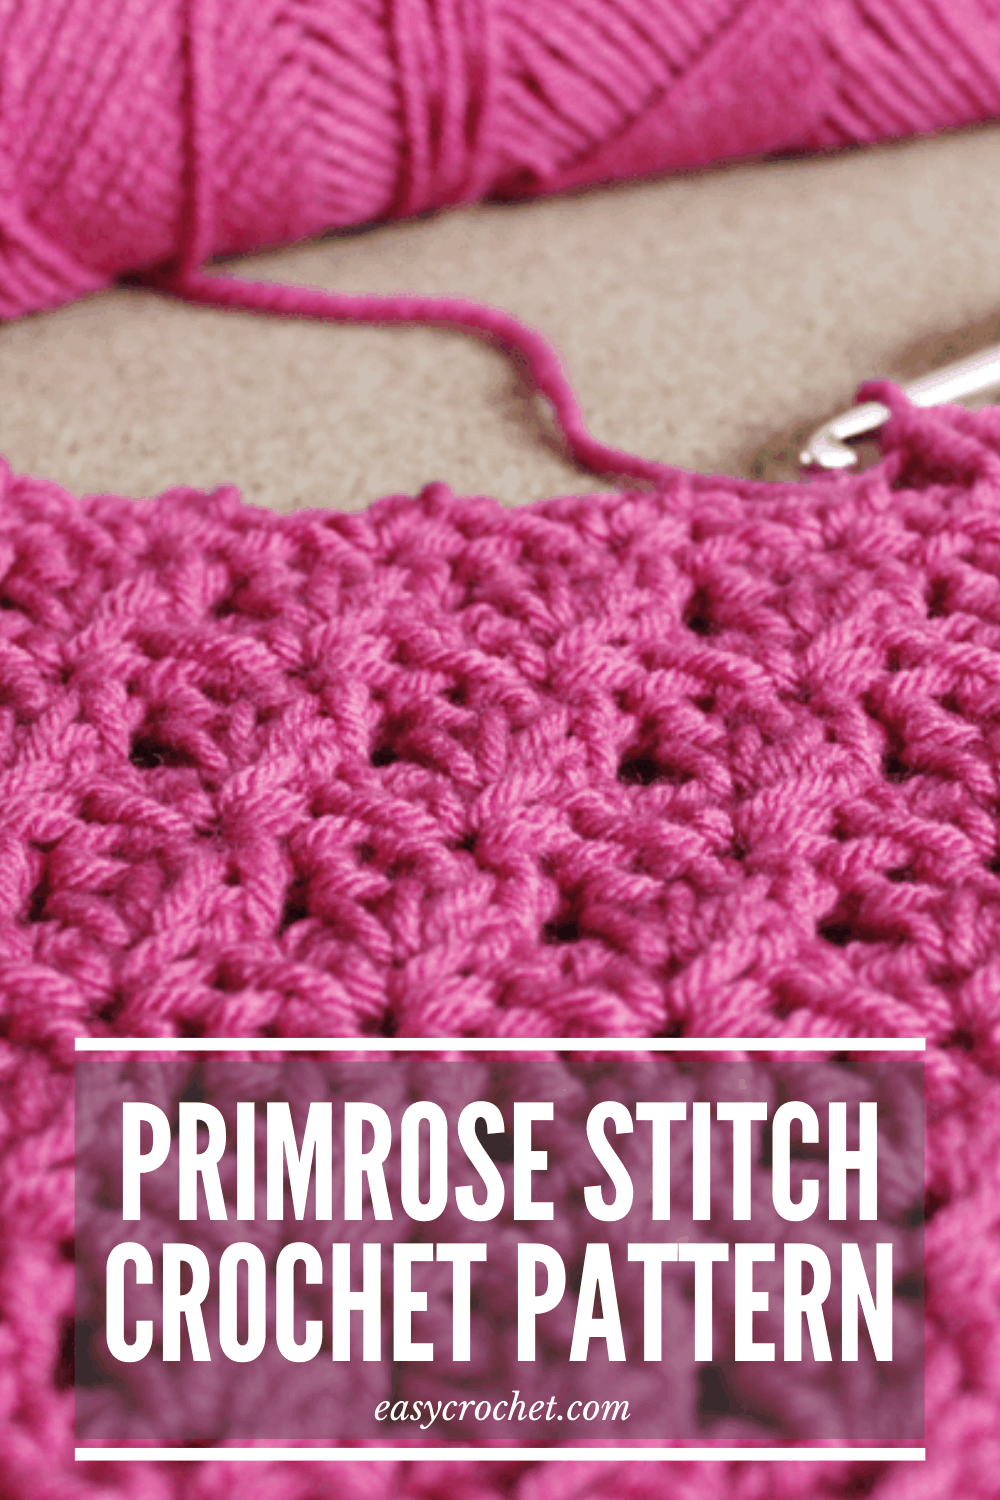 The primrose stitch, a modification on the shell stitch, is perfect for beginner crocheters who want to get learn an intermediate-stitch. It adds a beautiful texture to any crochet project. via @easycrochetcom